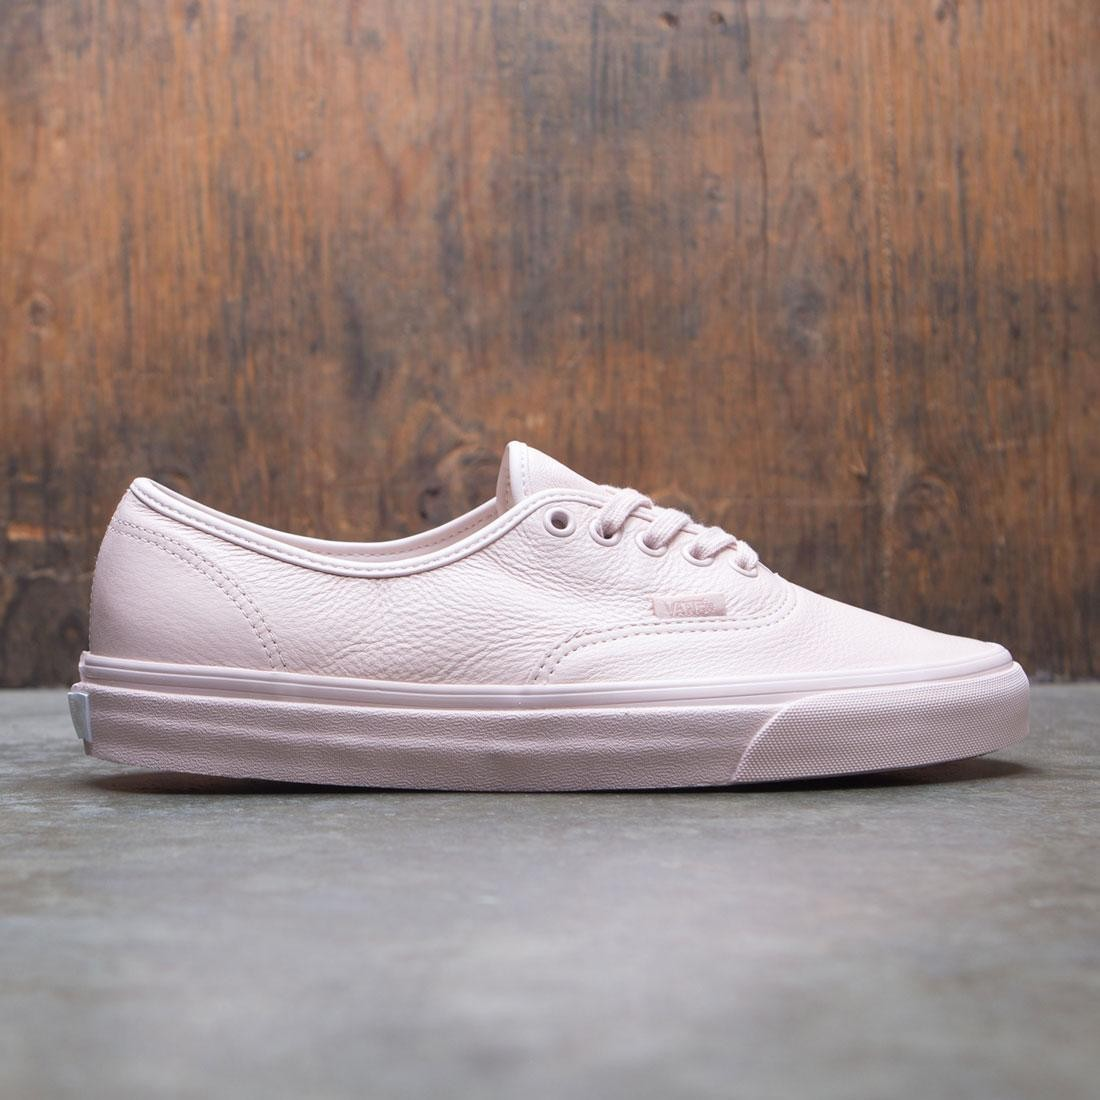 5d0ef7c7d81 Vans Men Authentic Leather - Mono pink sepia rose